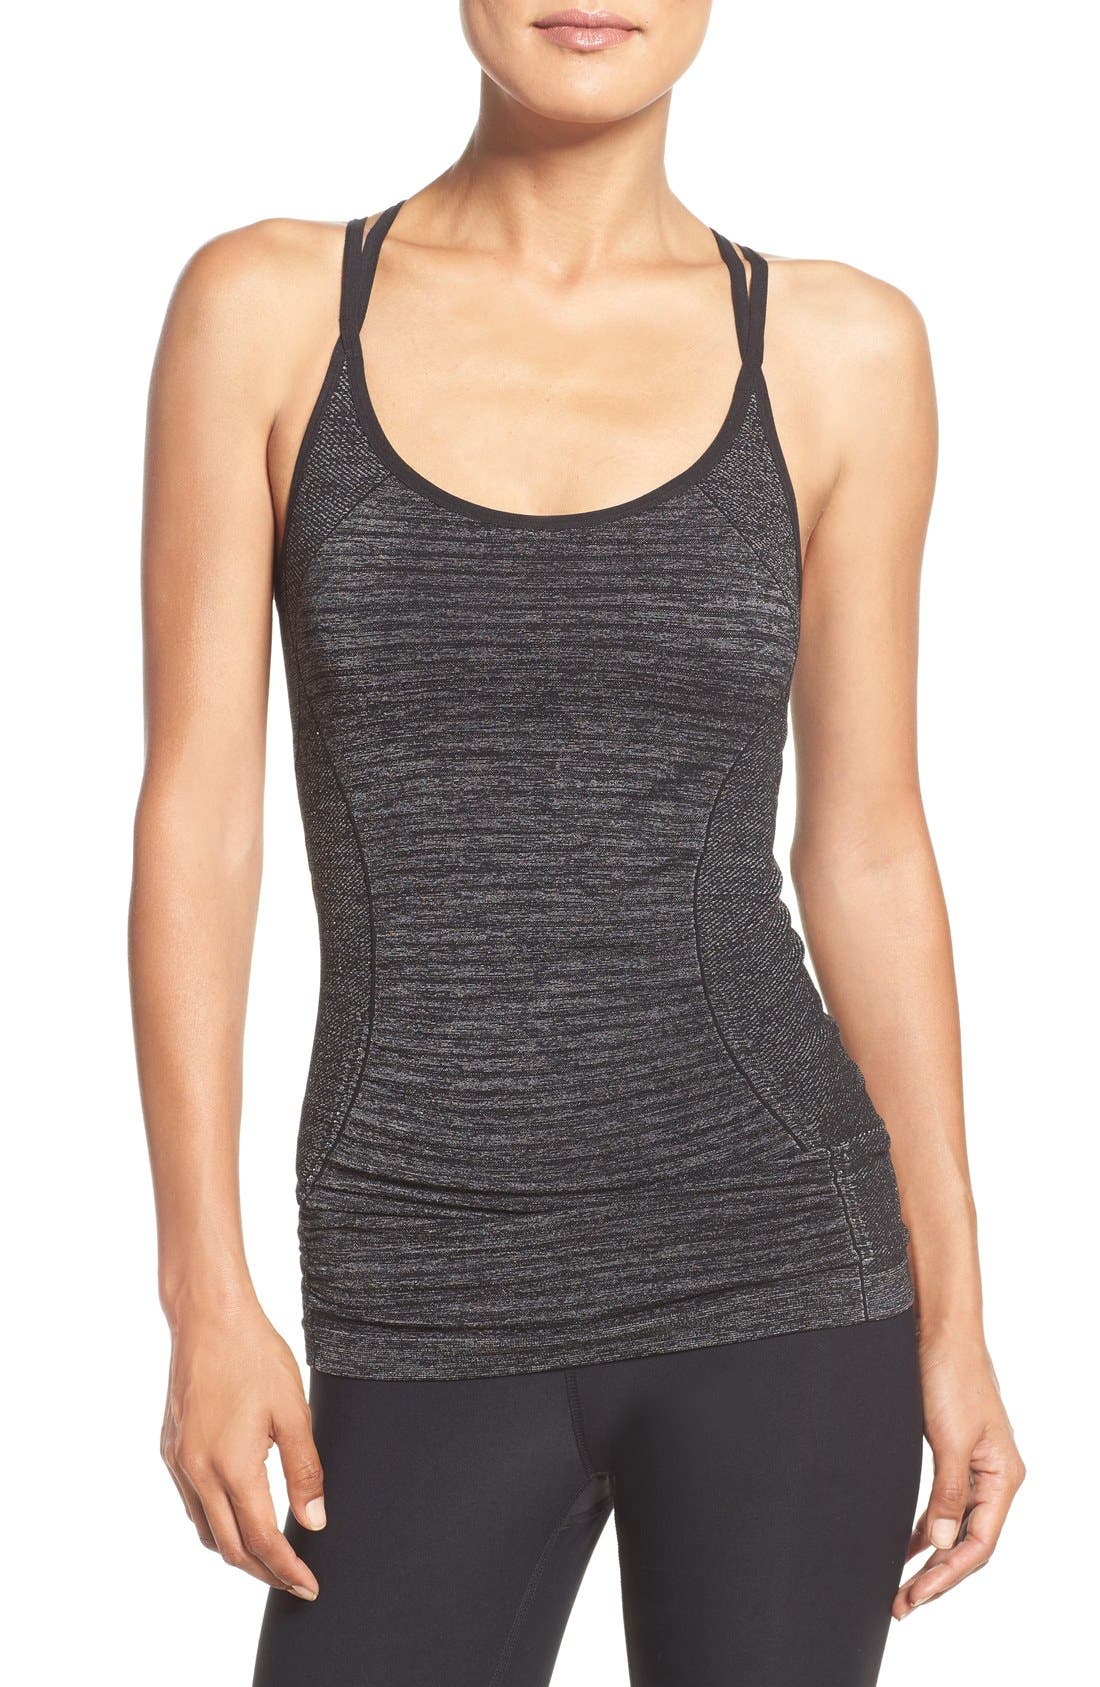 'Stabilize' Seamless Racerback Camisole,                             Main thumbnail 1, color,                             001